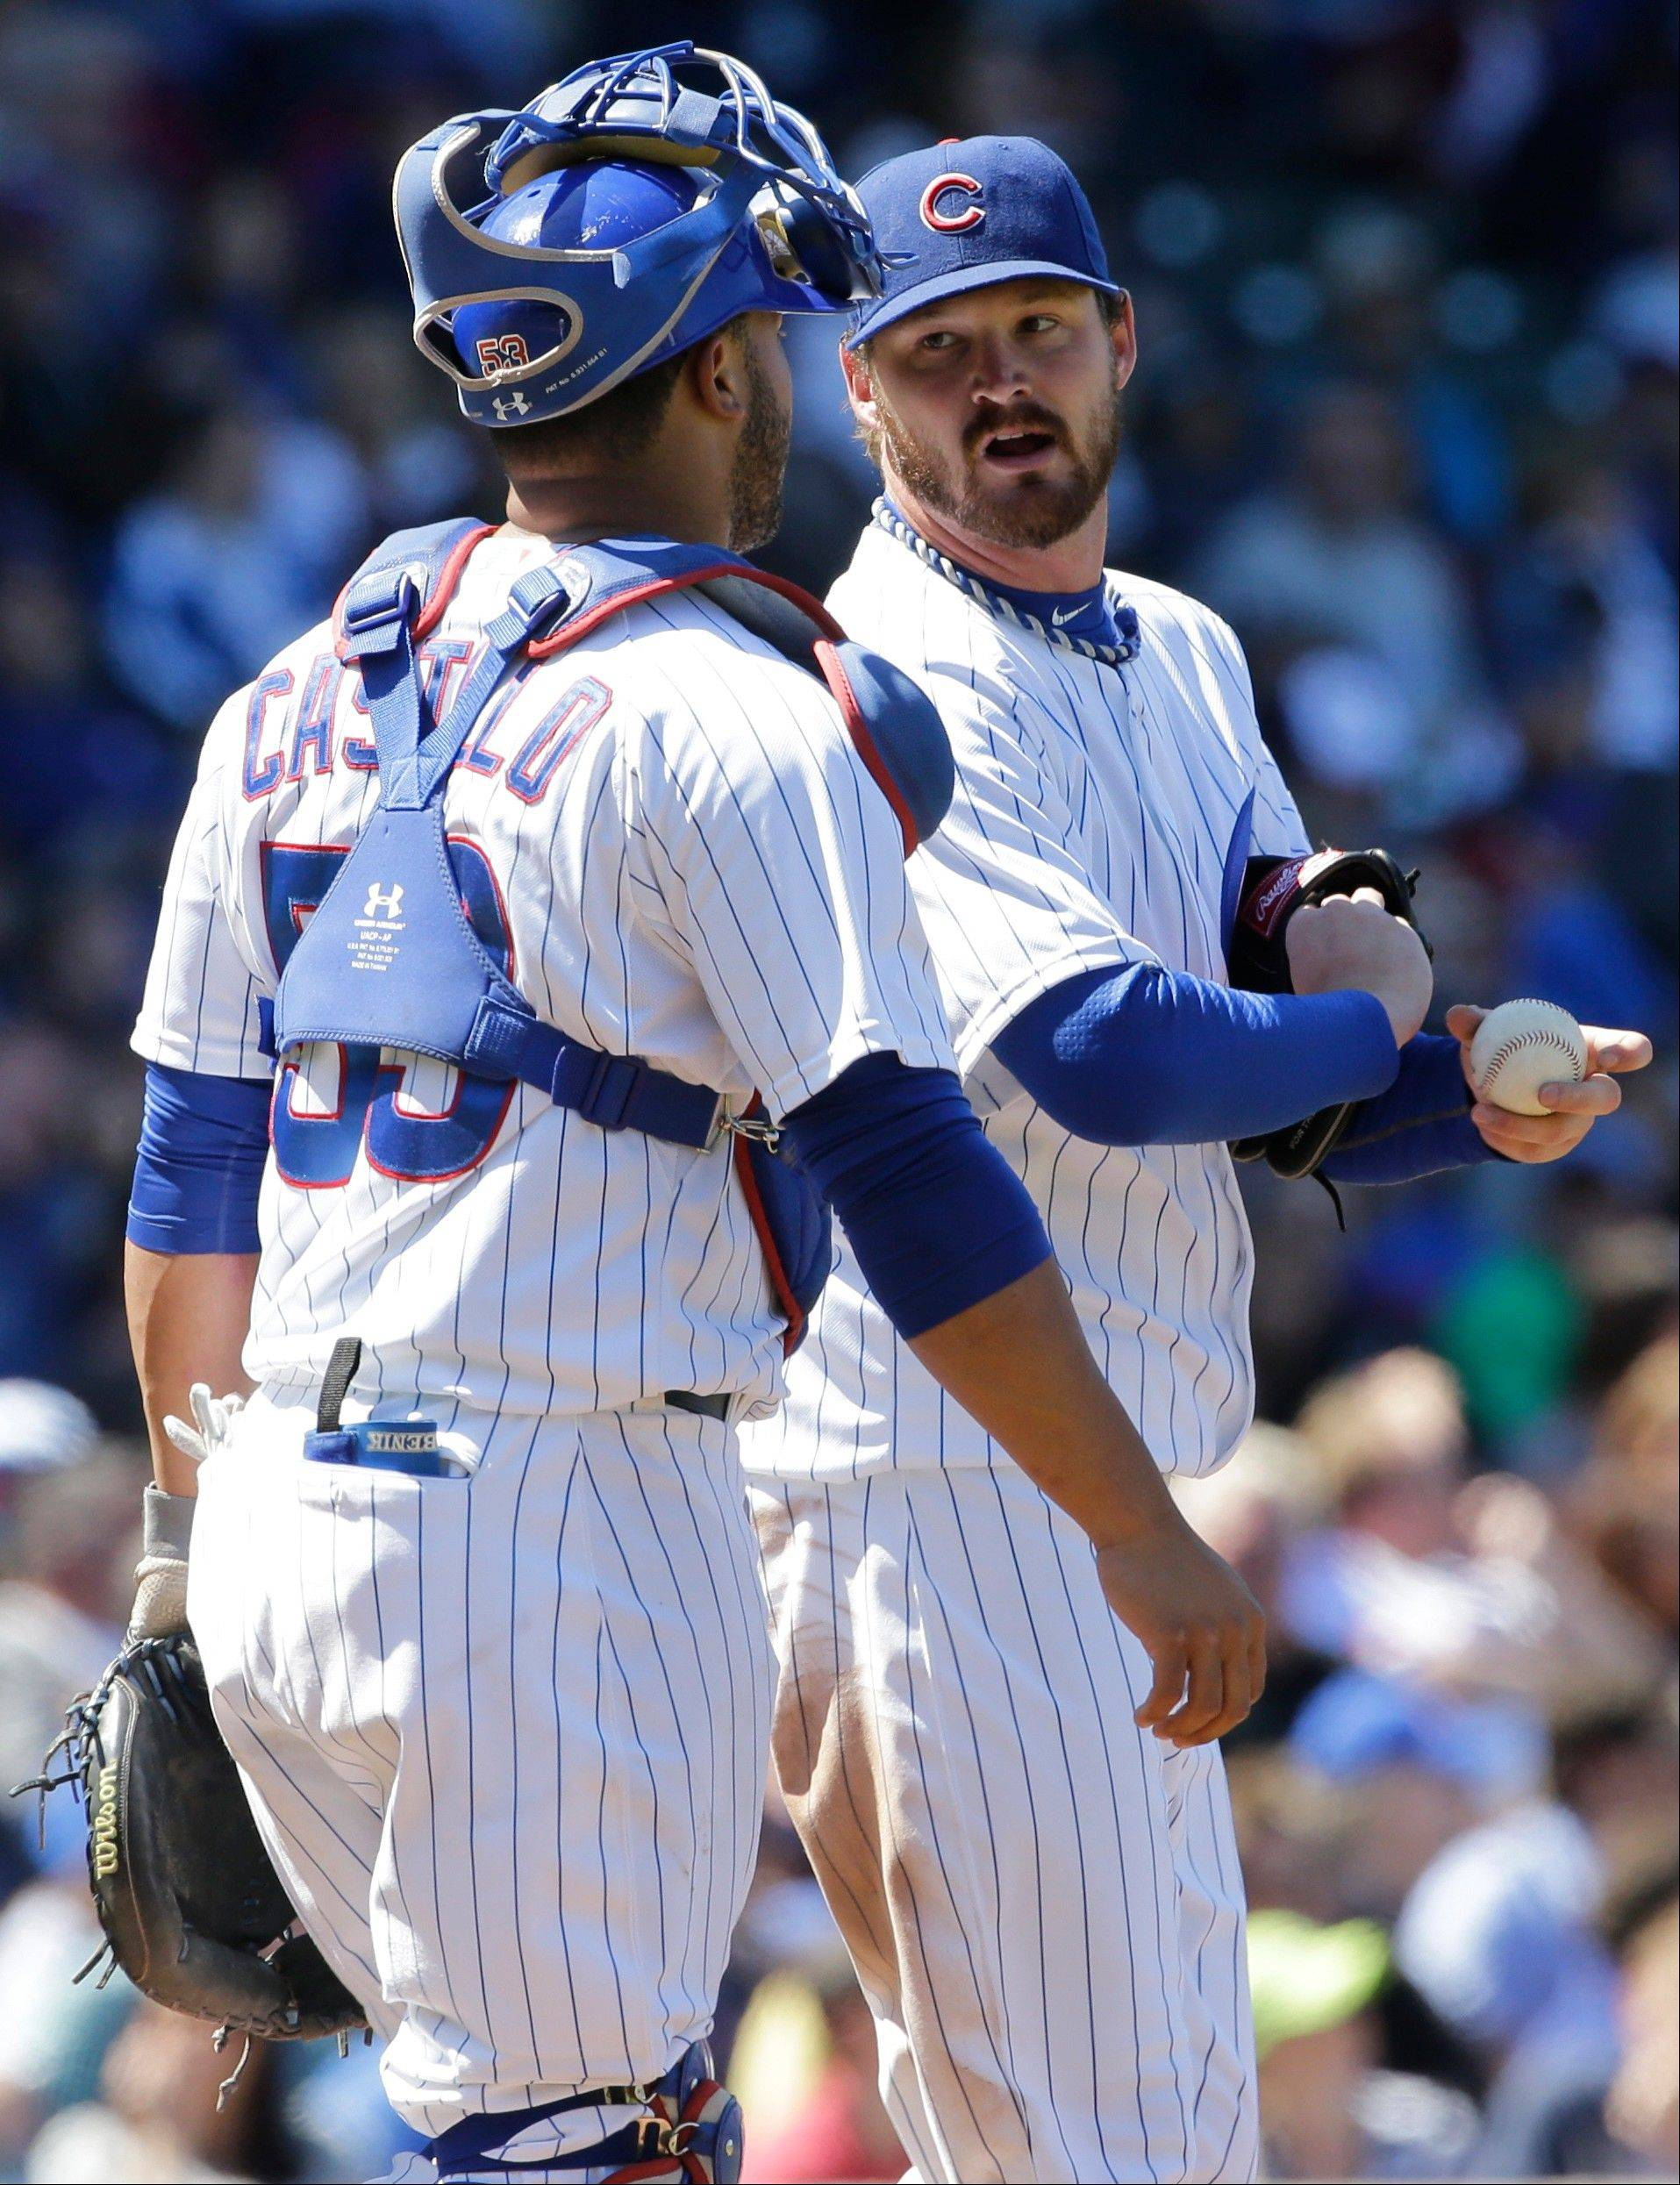 Cubs starter Travis Wood talks to catcher Welington Castillo after the Pirates� Russell Martin hit an RBI-double in the sixth inning Friday at Wrigley Field.